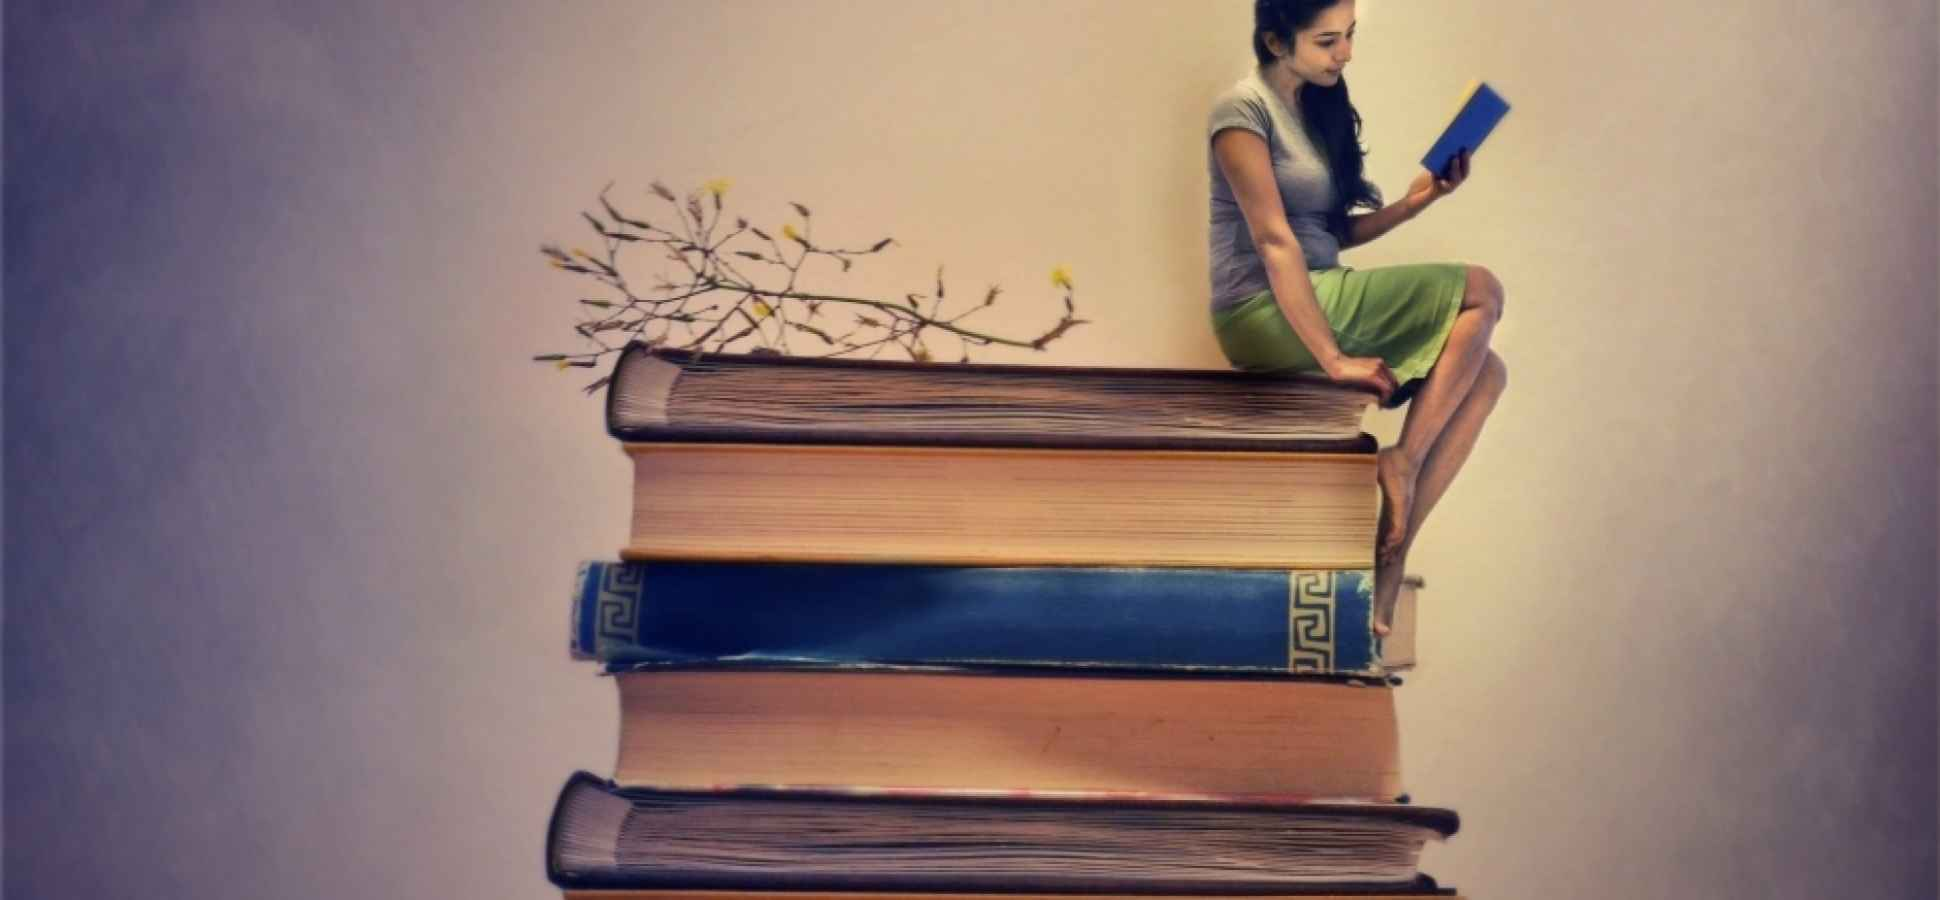 17 Intriguing Books Entrepreneurs Recommend You Read